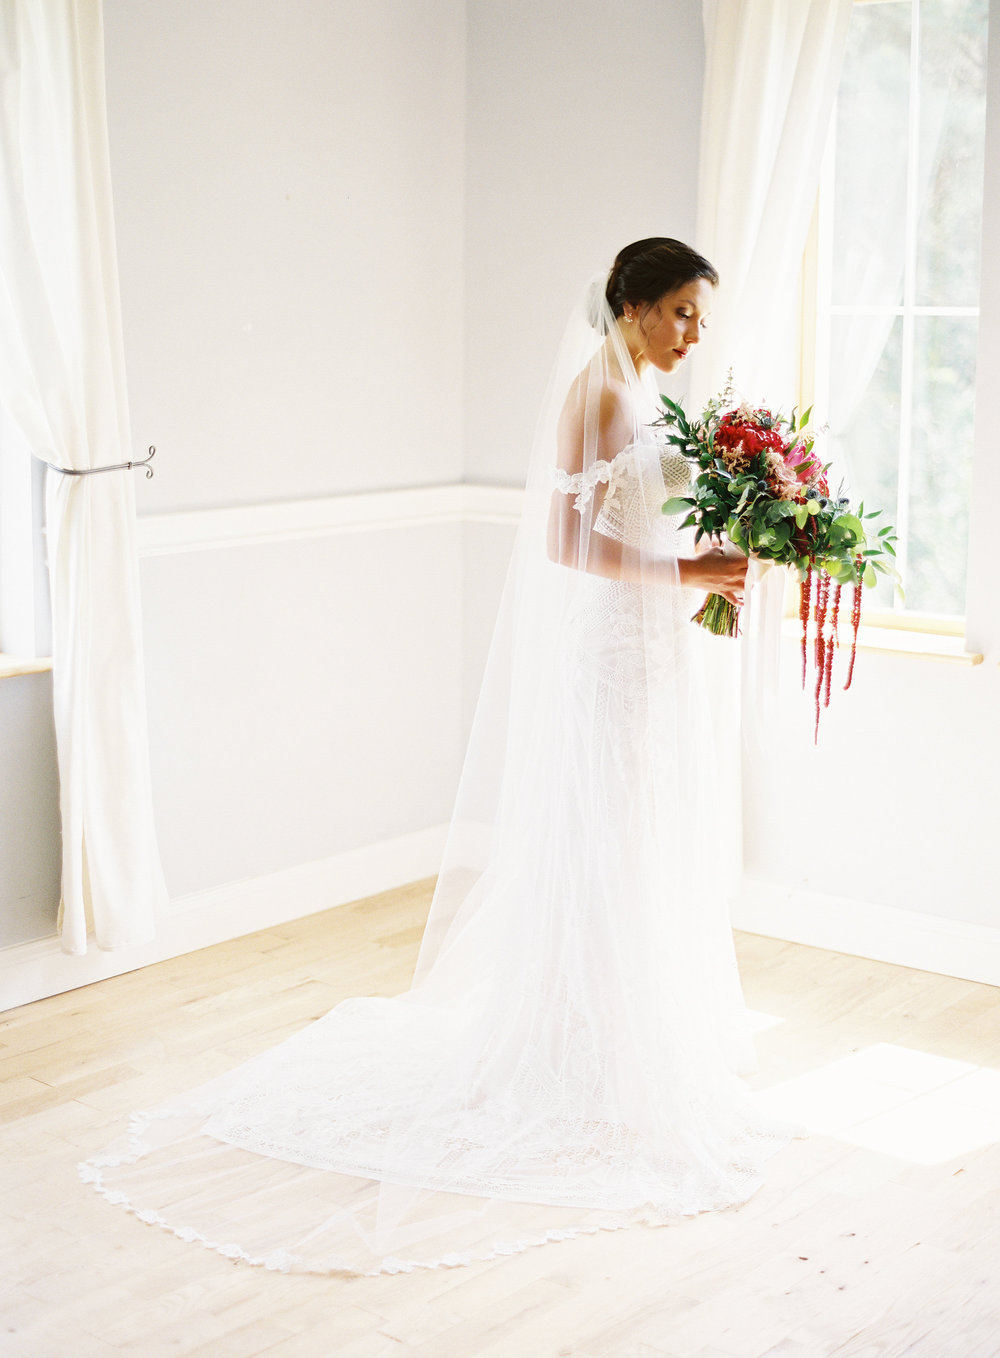 Brides, if your photographer will take the extra time to clear a corner of your getting ready space, you will be thrilled with the outcome. There are no distractions in this shot, even though the room was filled with bags, makeup, lunch, and other items belonging to the bridal party.